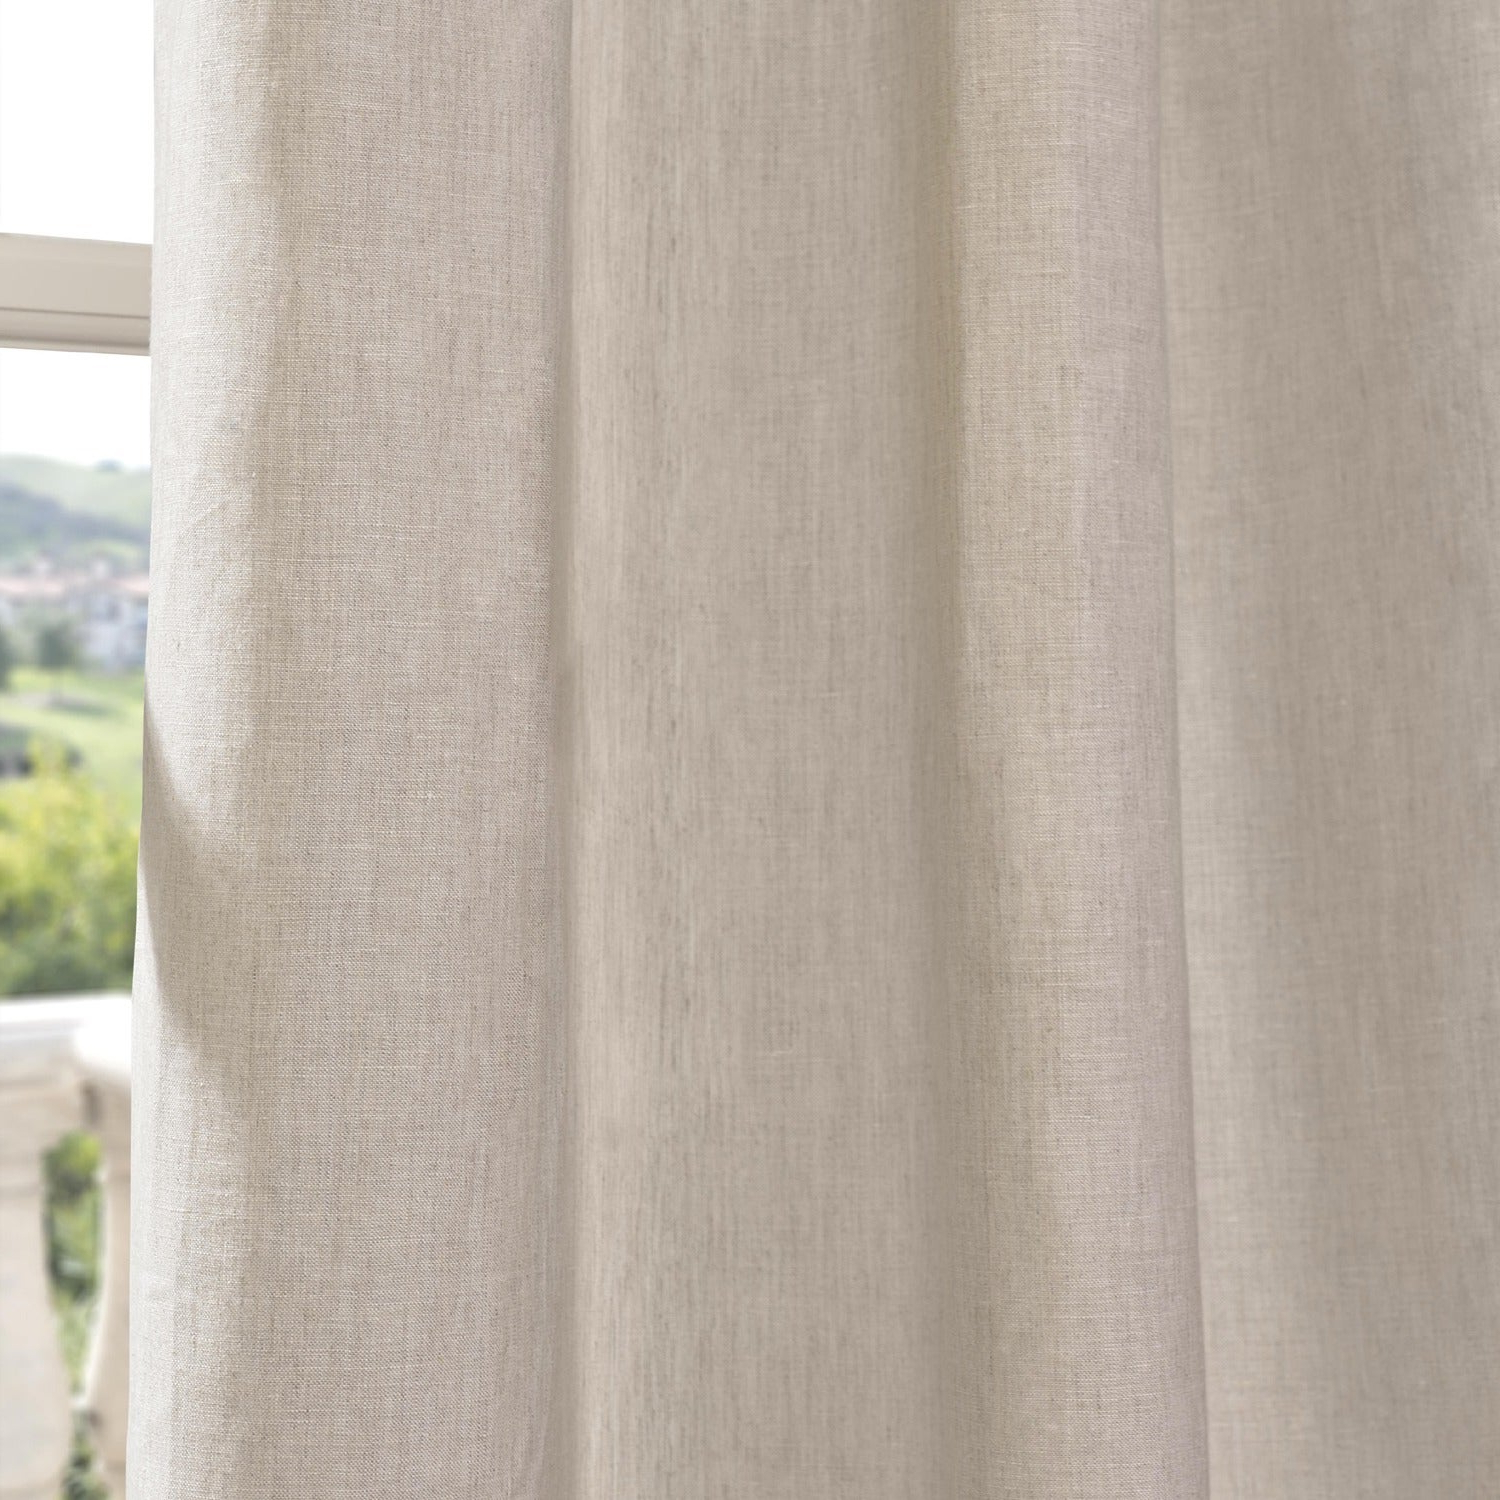 Signature French Linen Curtain Panels For Fashionable Exclusive Fabrics Signature French Linen Curtain Panel (View 8 of 20)